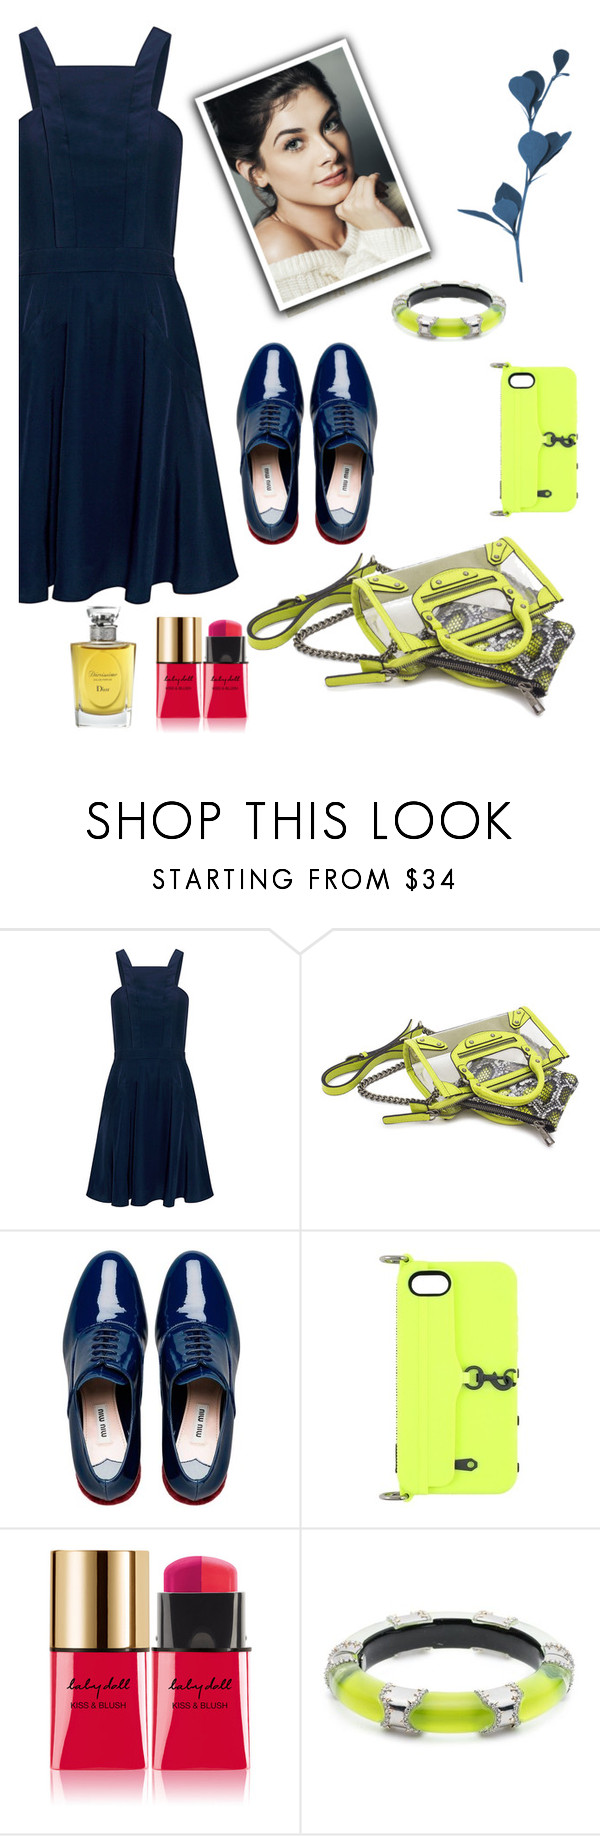 51d51748fc7 by schenonek ❤ liked on Polyvore featuring Finders Keepers